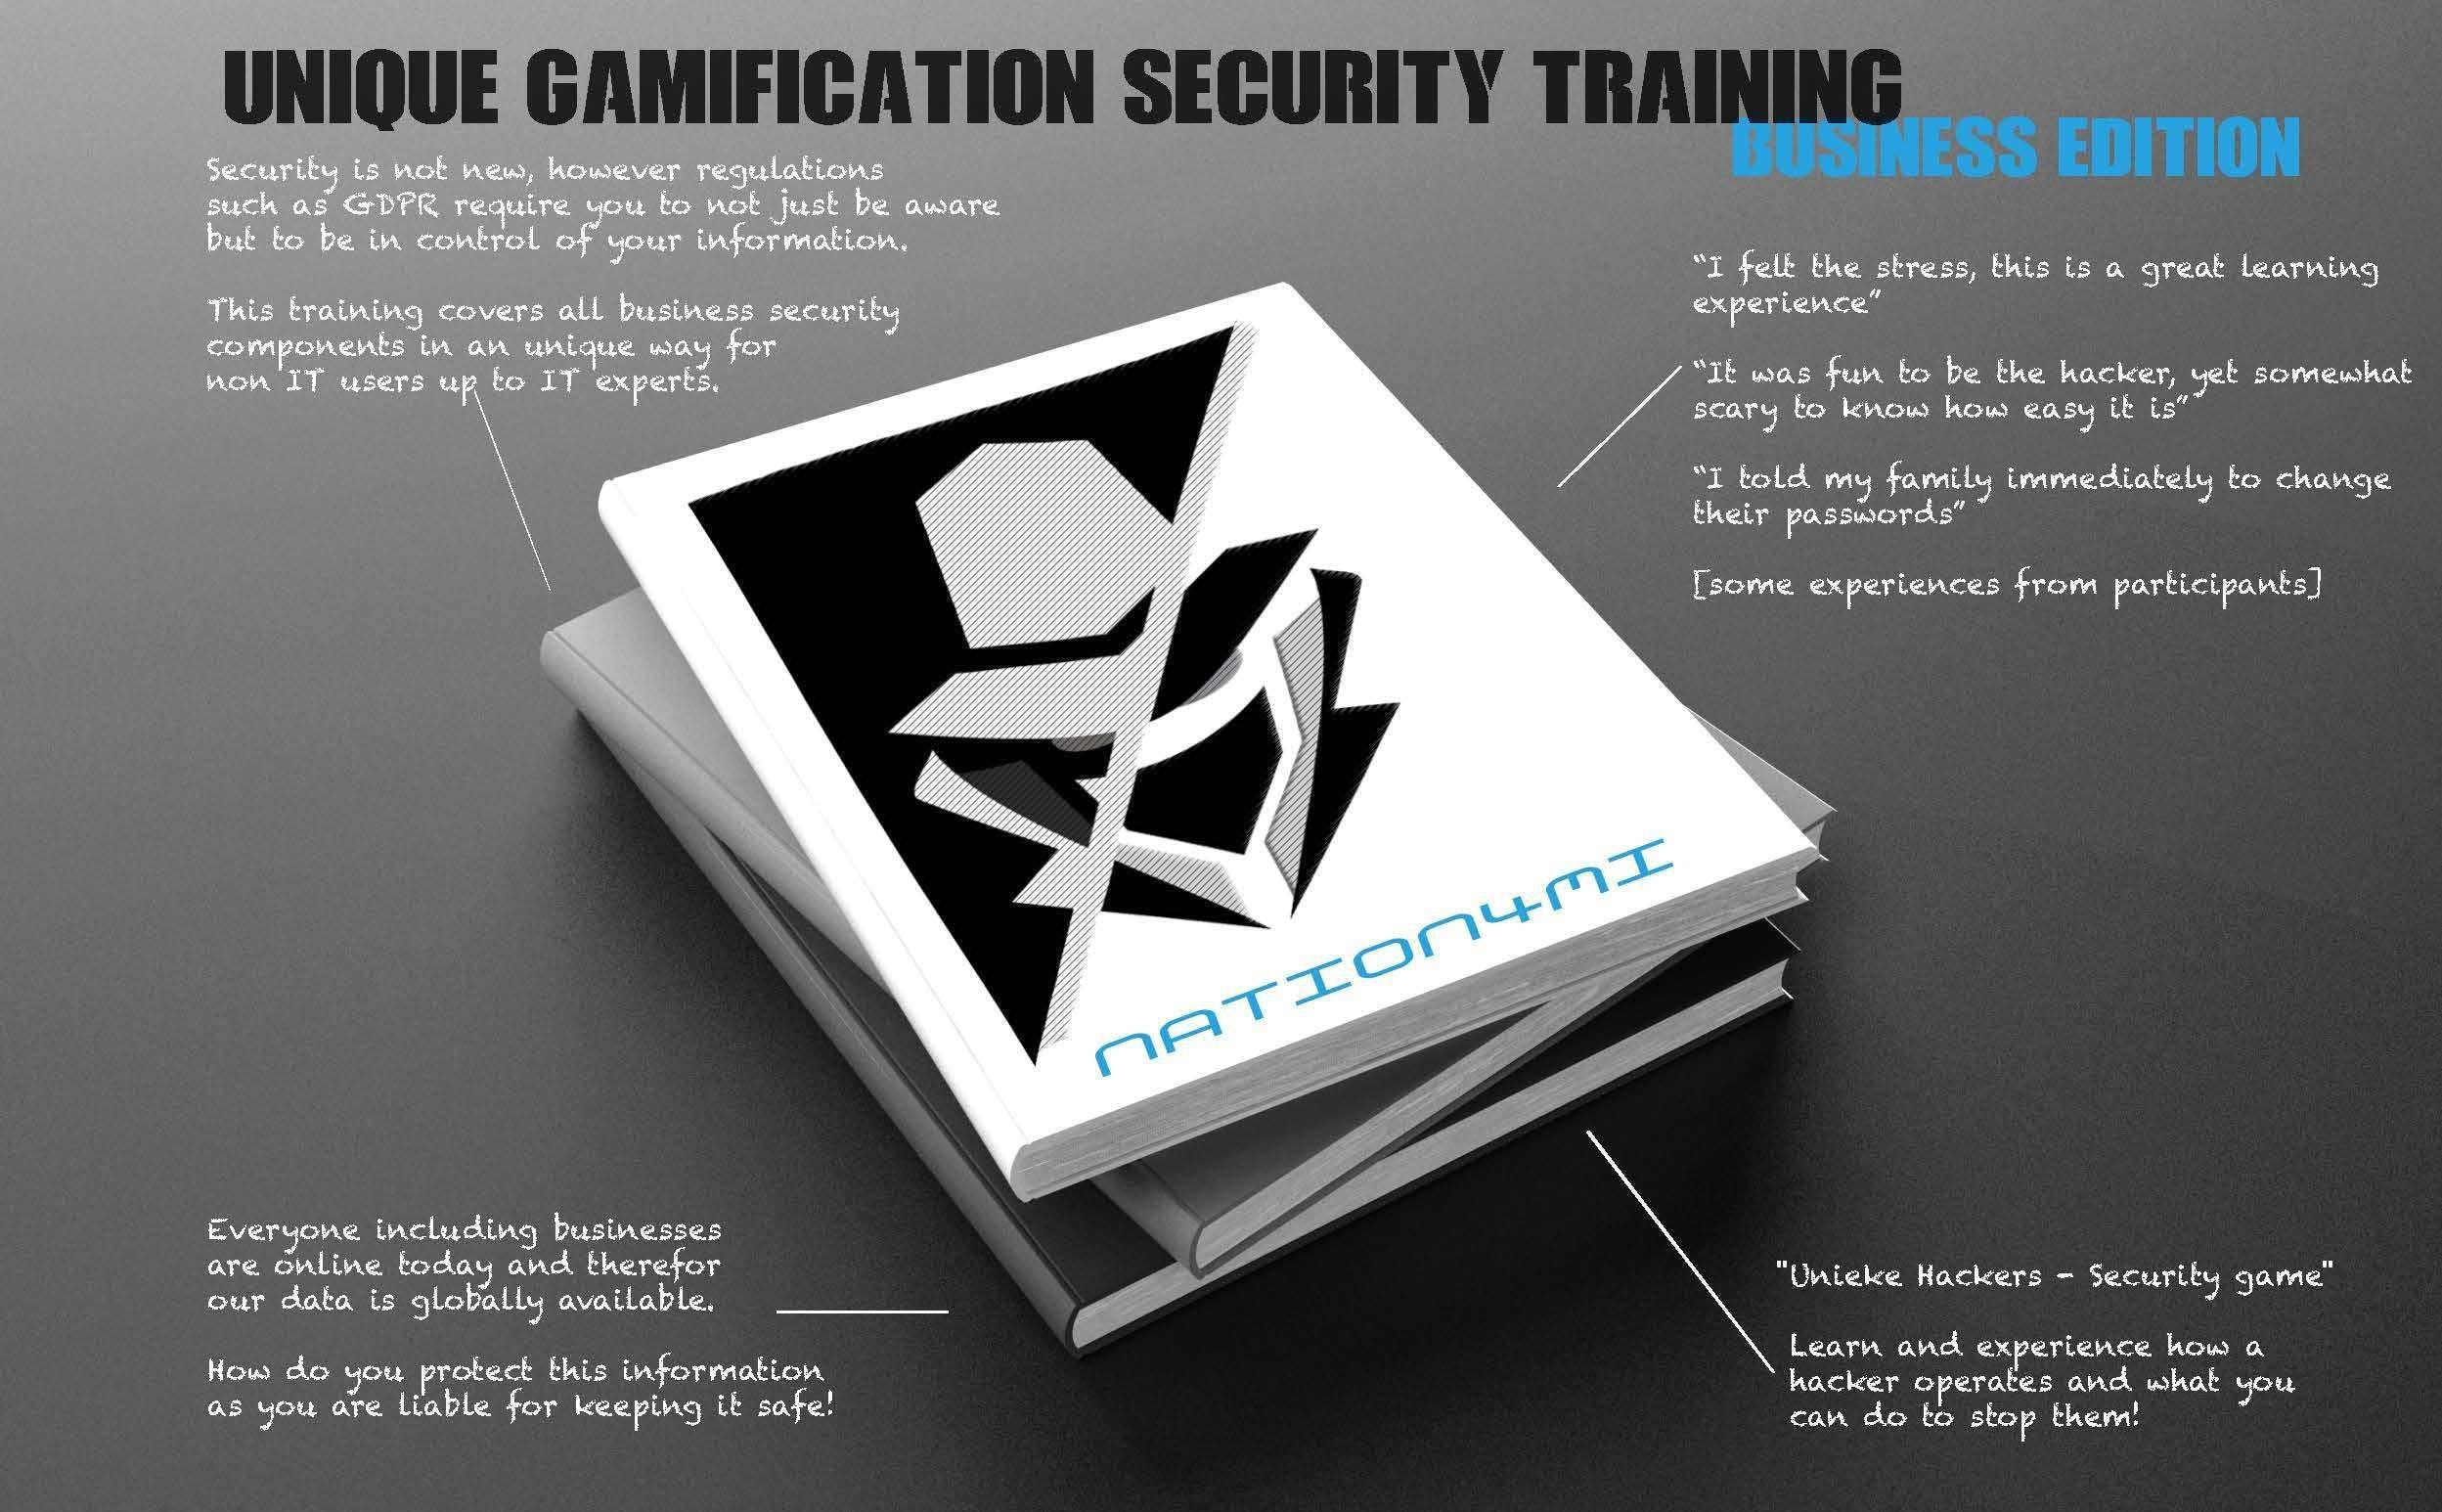 NATION4MI - security gamification training fo